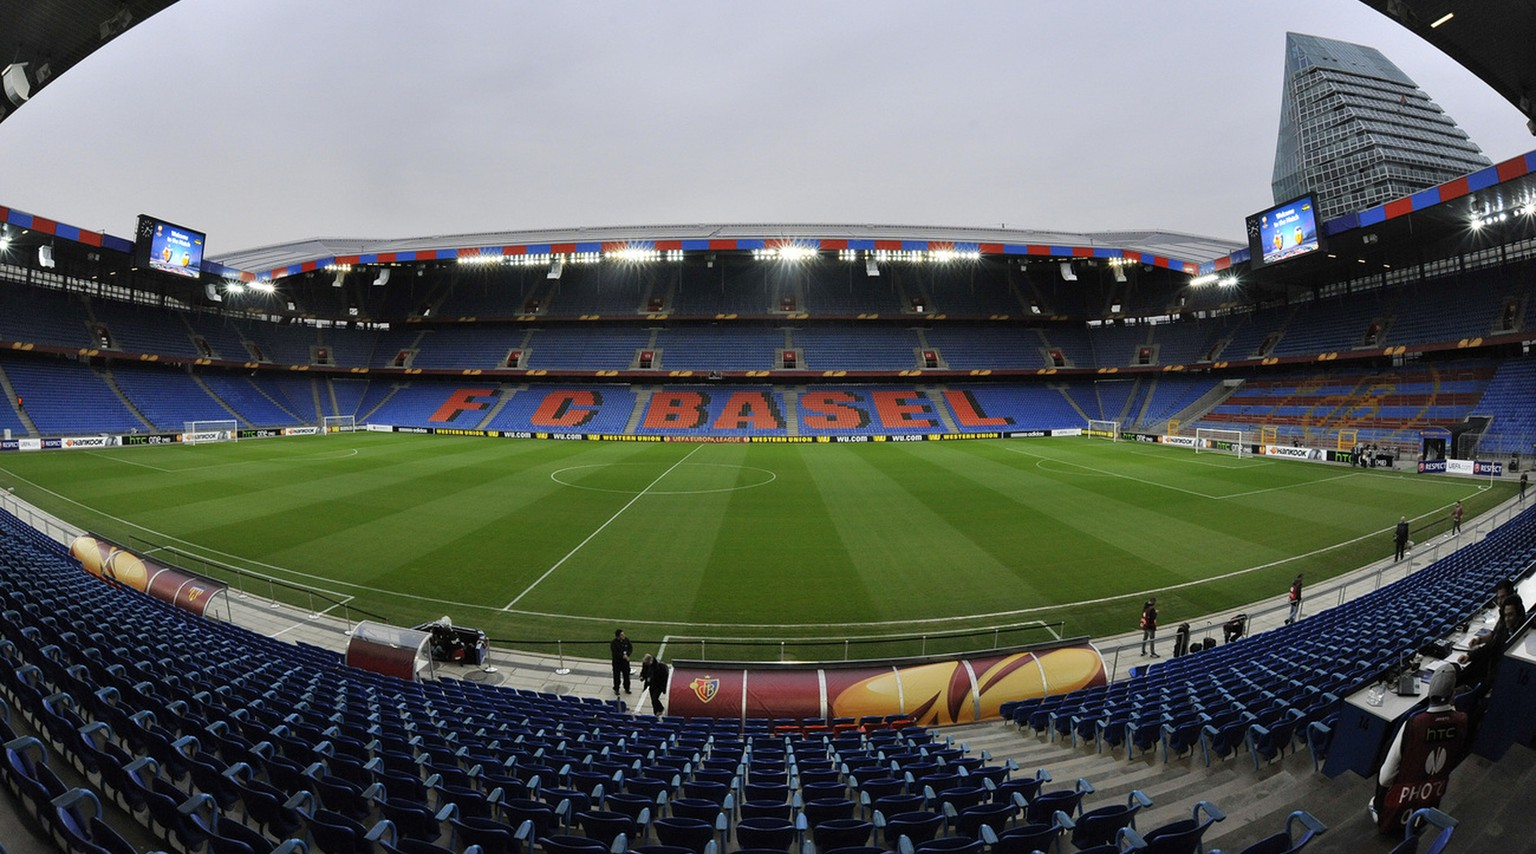 The empty stadium prior to the UEFA Europa League quarter final first leg soccer match between Switzerland's FC Basel 1893 and Spain's Valencia CF behind closed doors at the St. Jakob-Park stadium in Basel, Switzerland, on Thursday, April 3, 2014. (KEYSTONE/Georgios Kefalas)